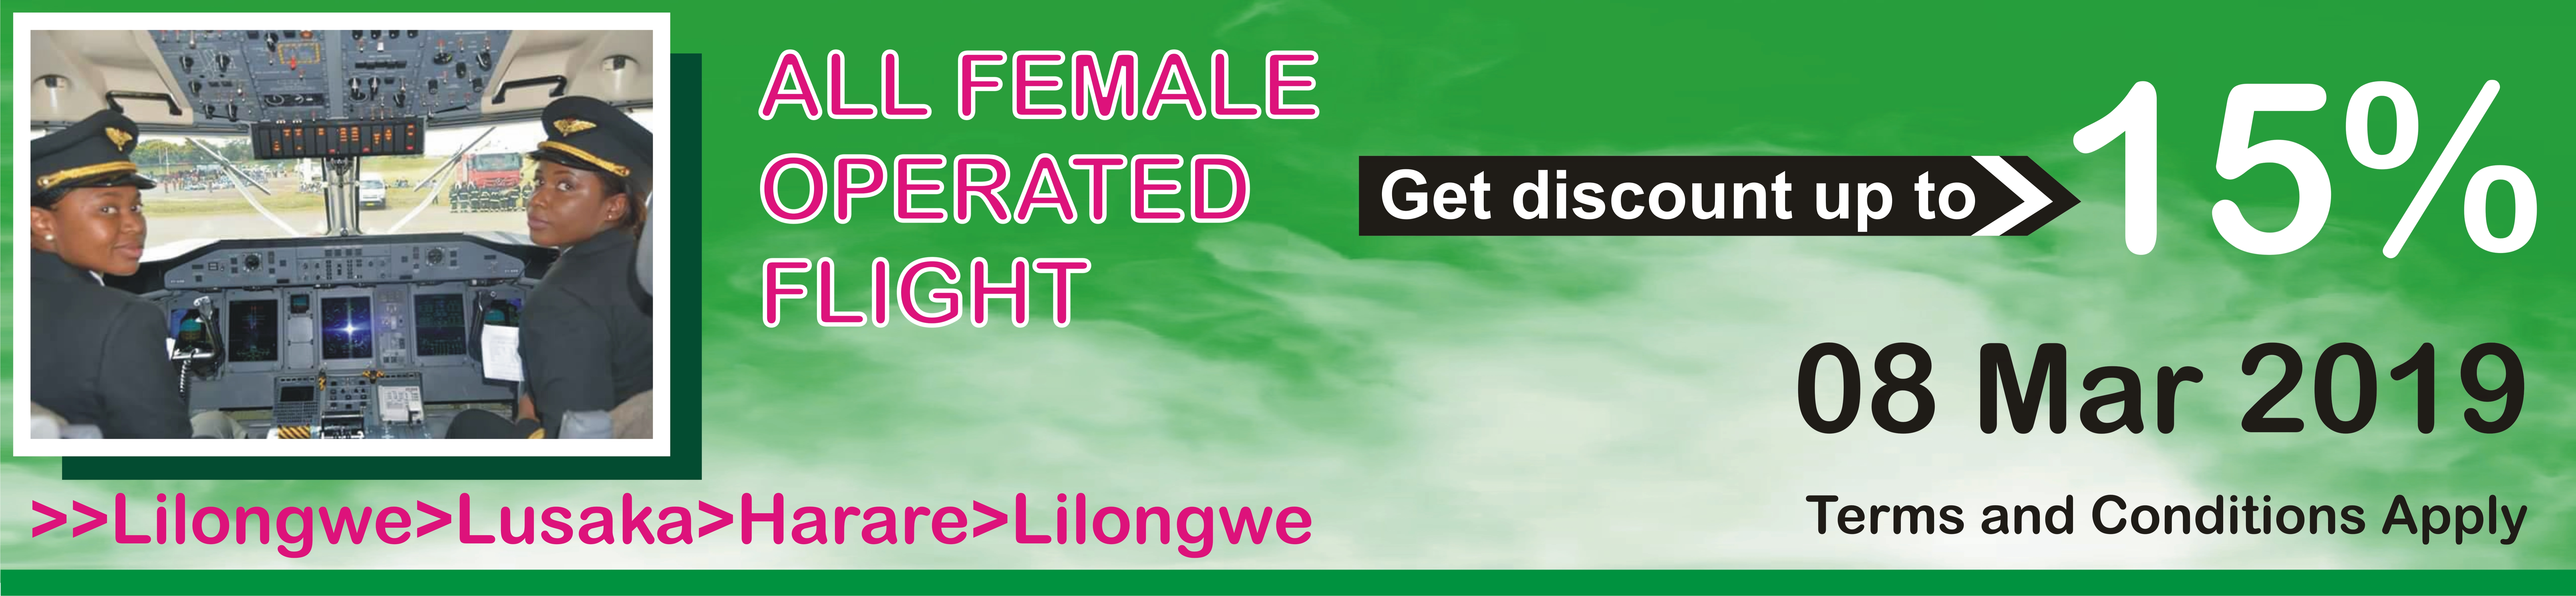 Malawi Airlines will join the rest of the international community in  commemorating this year s International Women s Day (IWD) with an  all-female staffed ... 5e6fb31d6